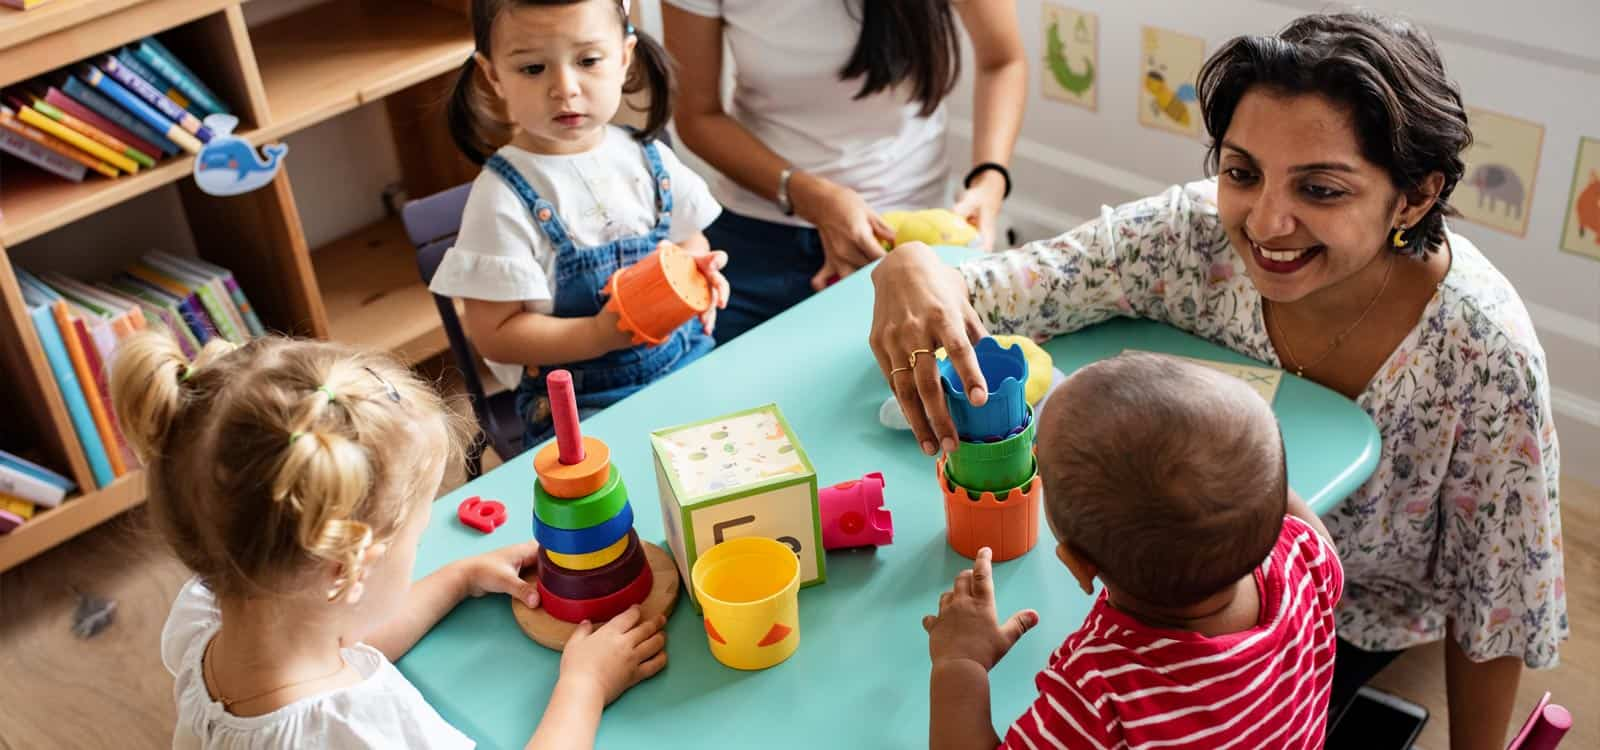 A woman is surrounded by children and plays with toys with them, indicating she pursued the business idea of becoming a daycare owner